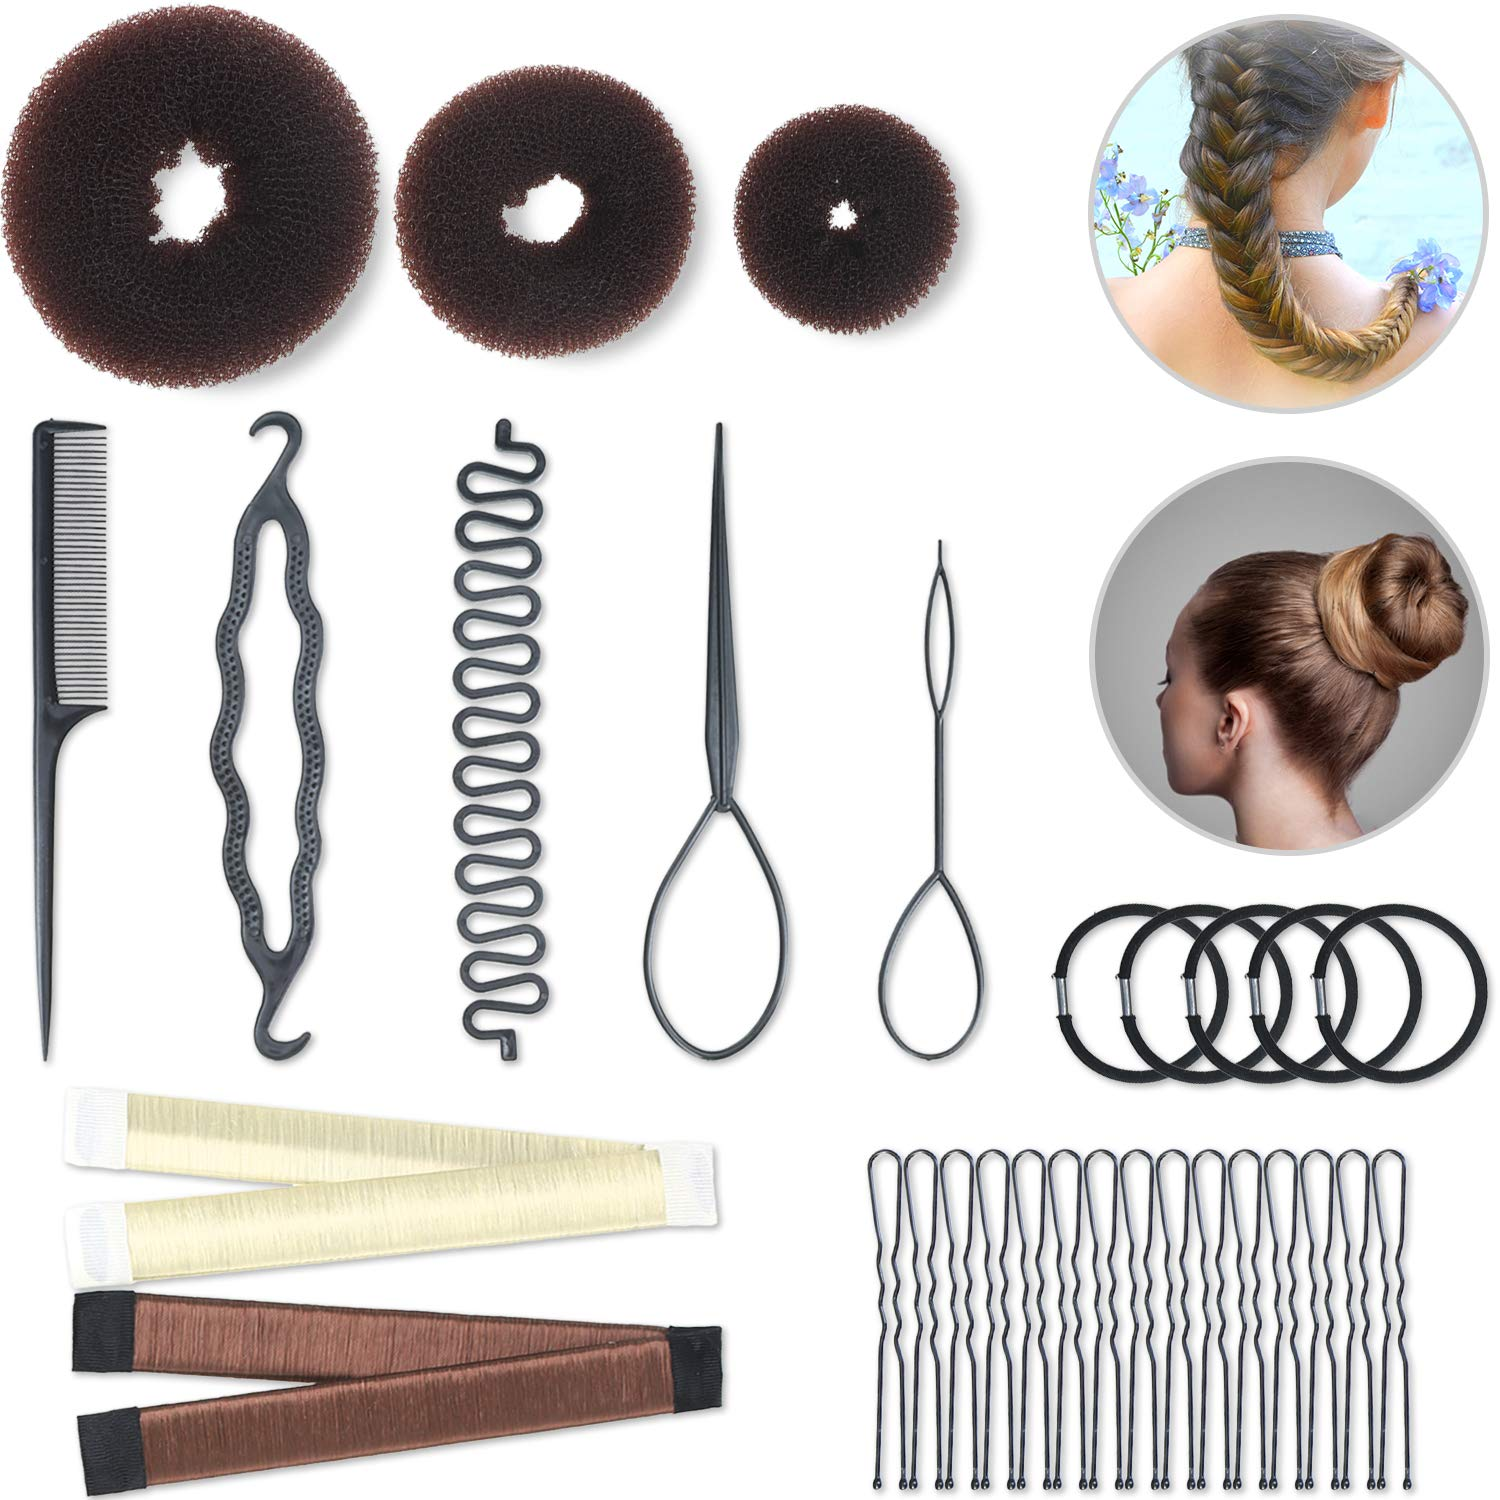 Hair Styling Set Hair Braid Tool 3 Pieces Donut Hair Bun Tool 2 Pieces French Magic Twist Hairstyle Clip Rollers 15 Pieces U-shaped Hair Pins 5 Pieces Hair Ropes for Women Girls: Beauty